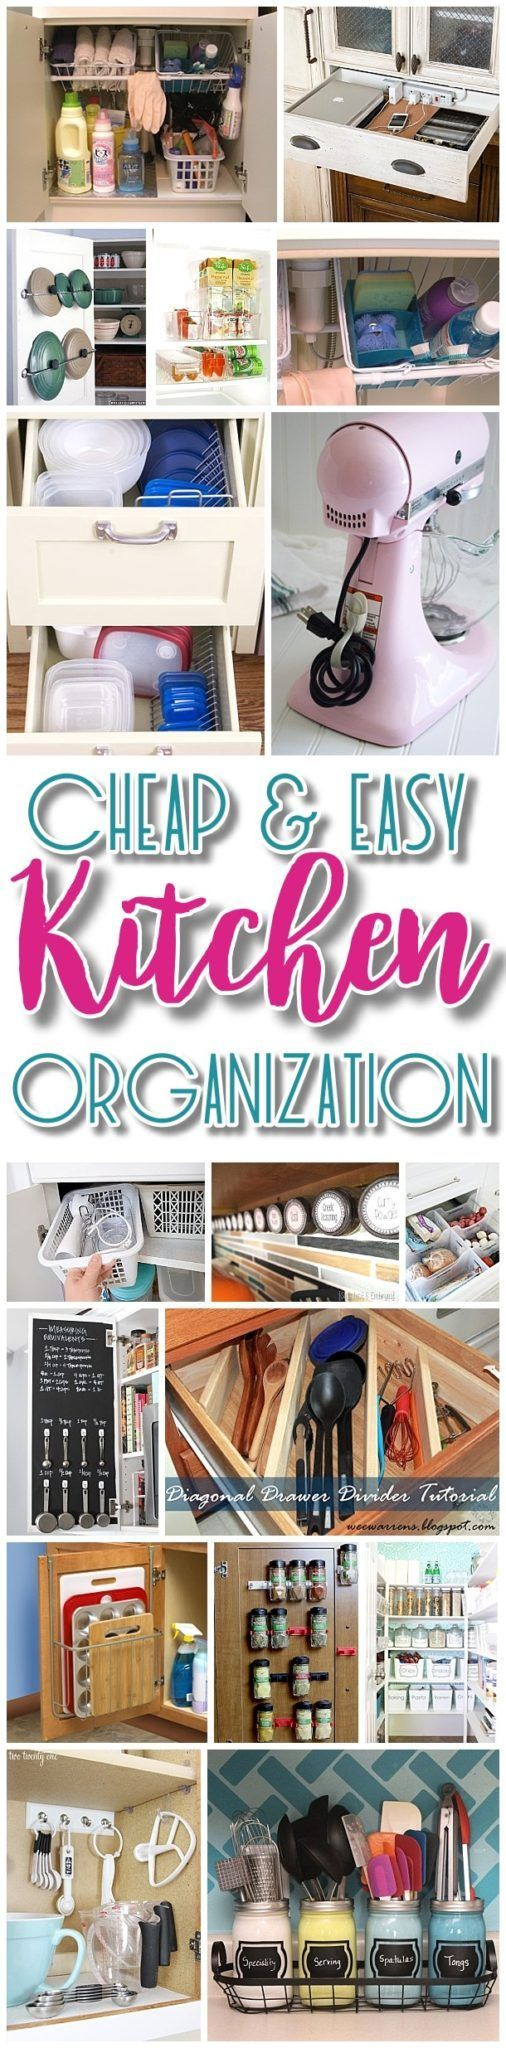 best 25 space saving kitchen ideas on pinterest space saving easy budget friendly ways to organize your kitchen quick tips space saving tricks clever hacks organizing ideas